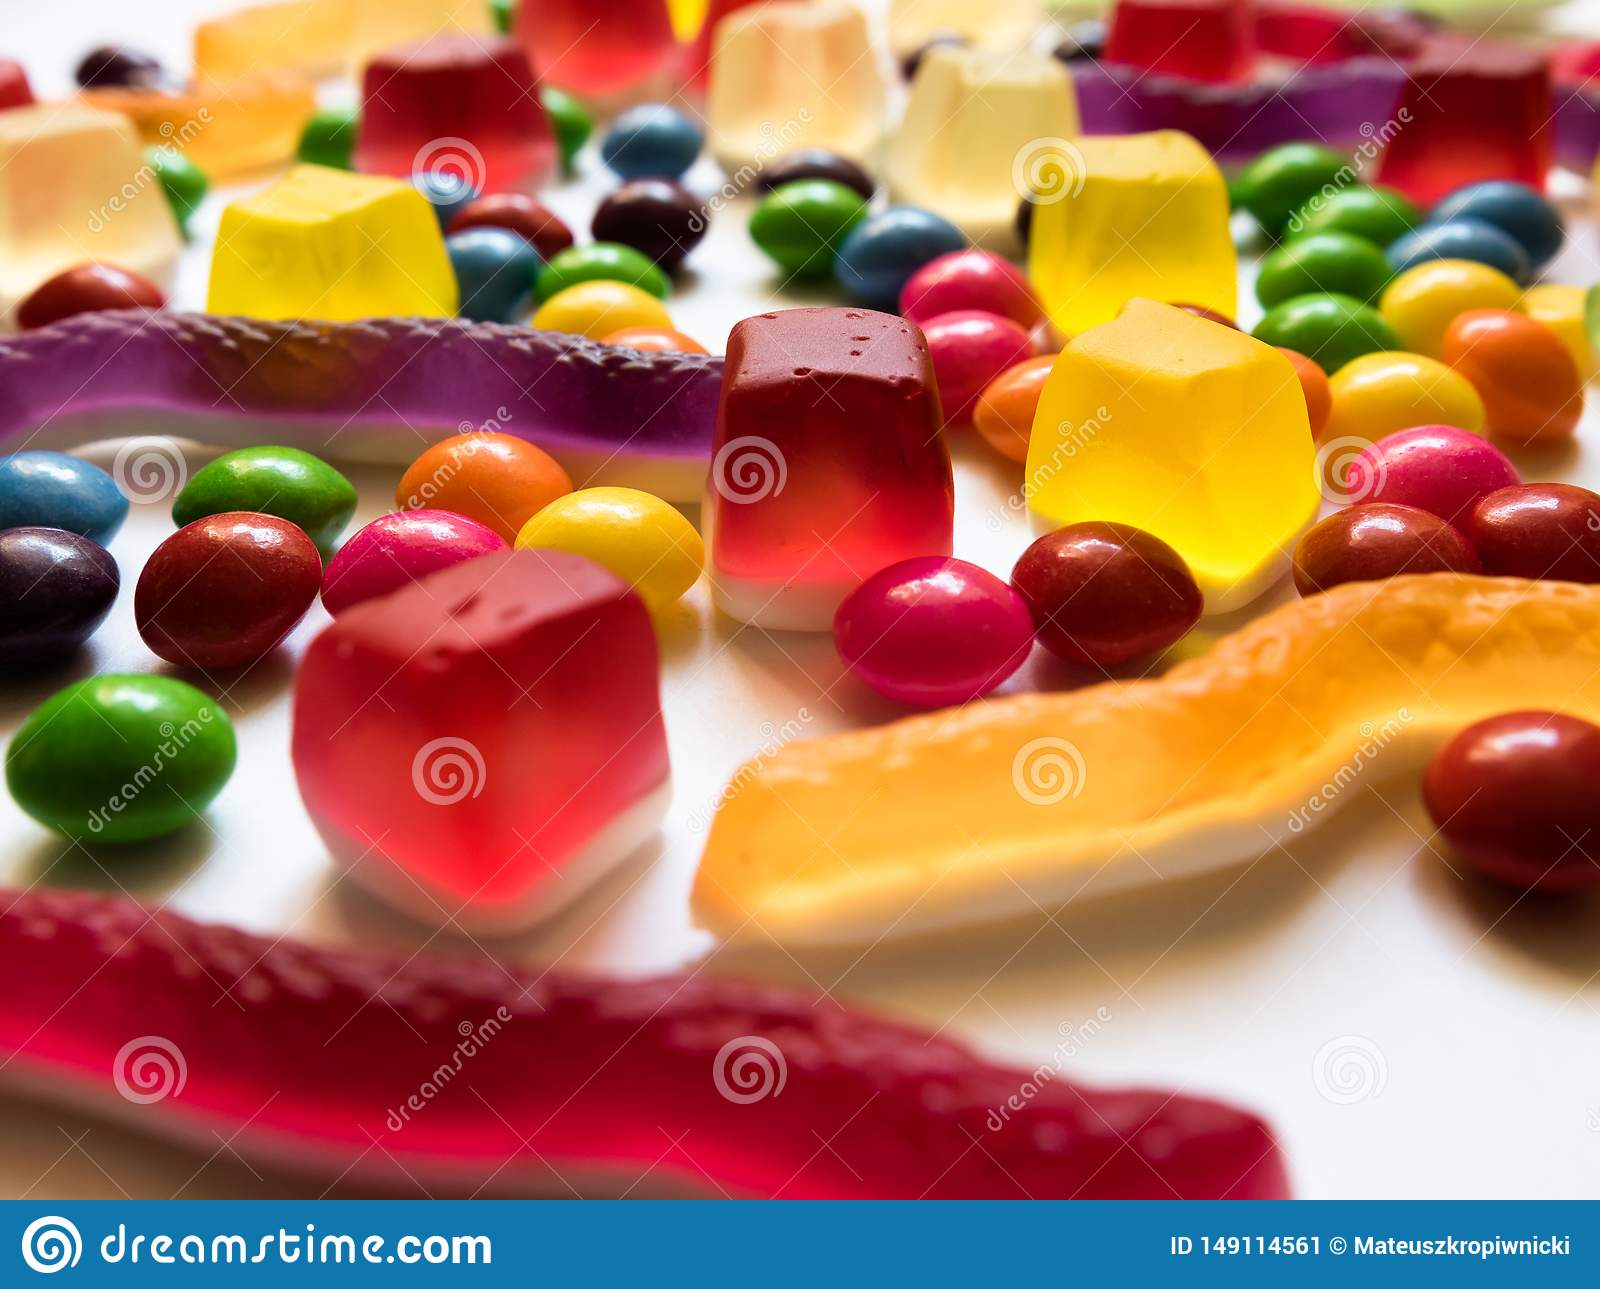 Colorful jelly and hard candies on white background